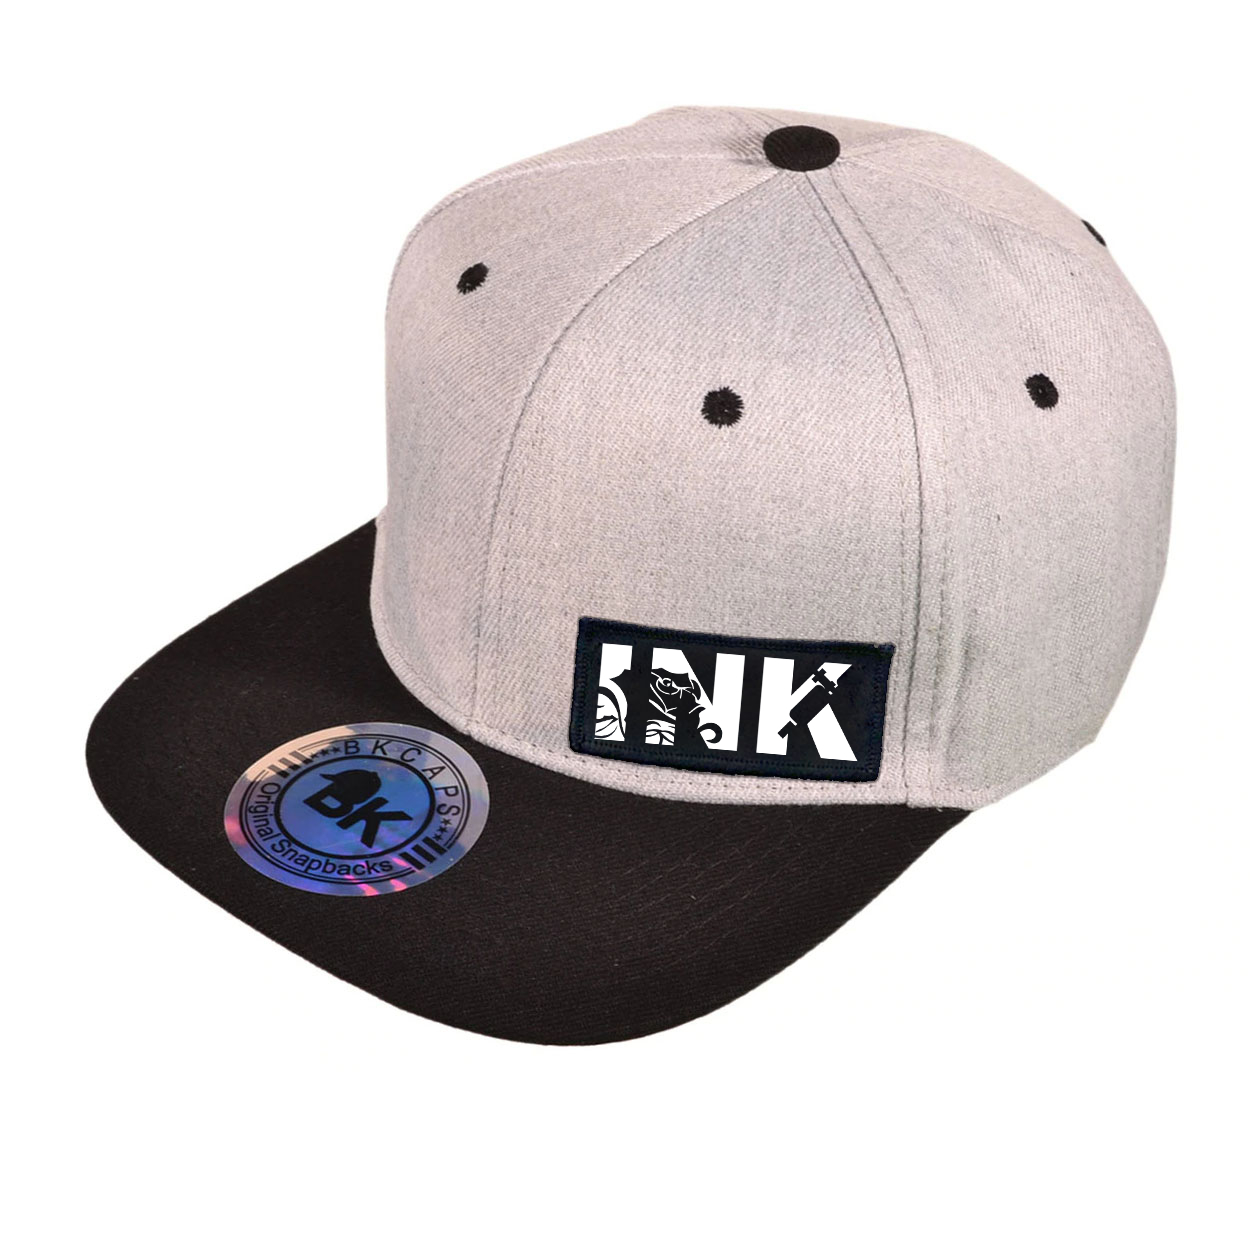 Ink Tattoo Logo Night Out Woven Patch Snapback Flat Brim Hat Heather Gray/Black (White Logo)